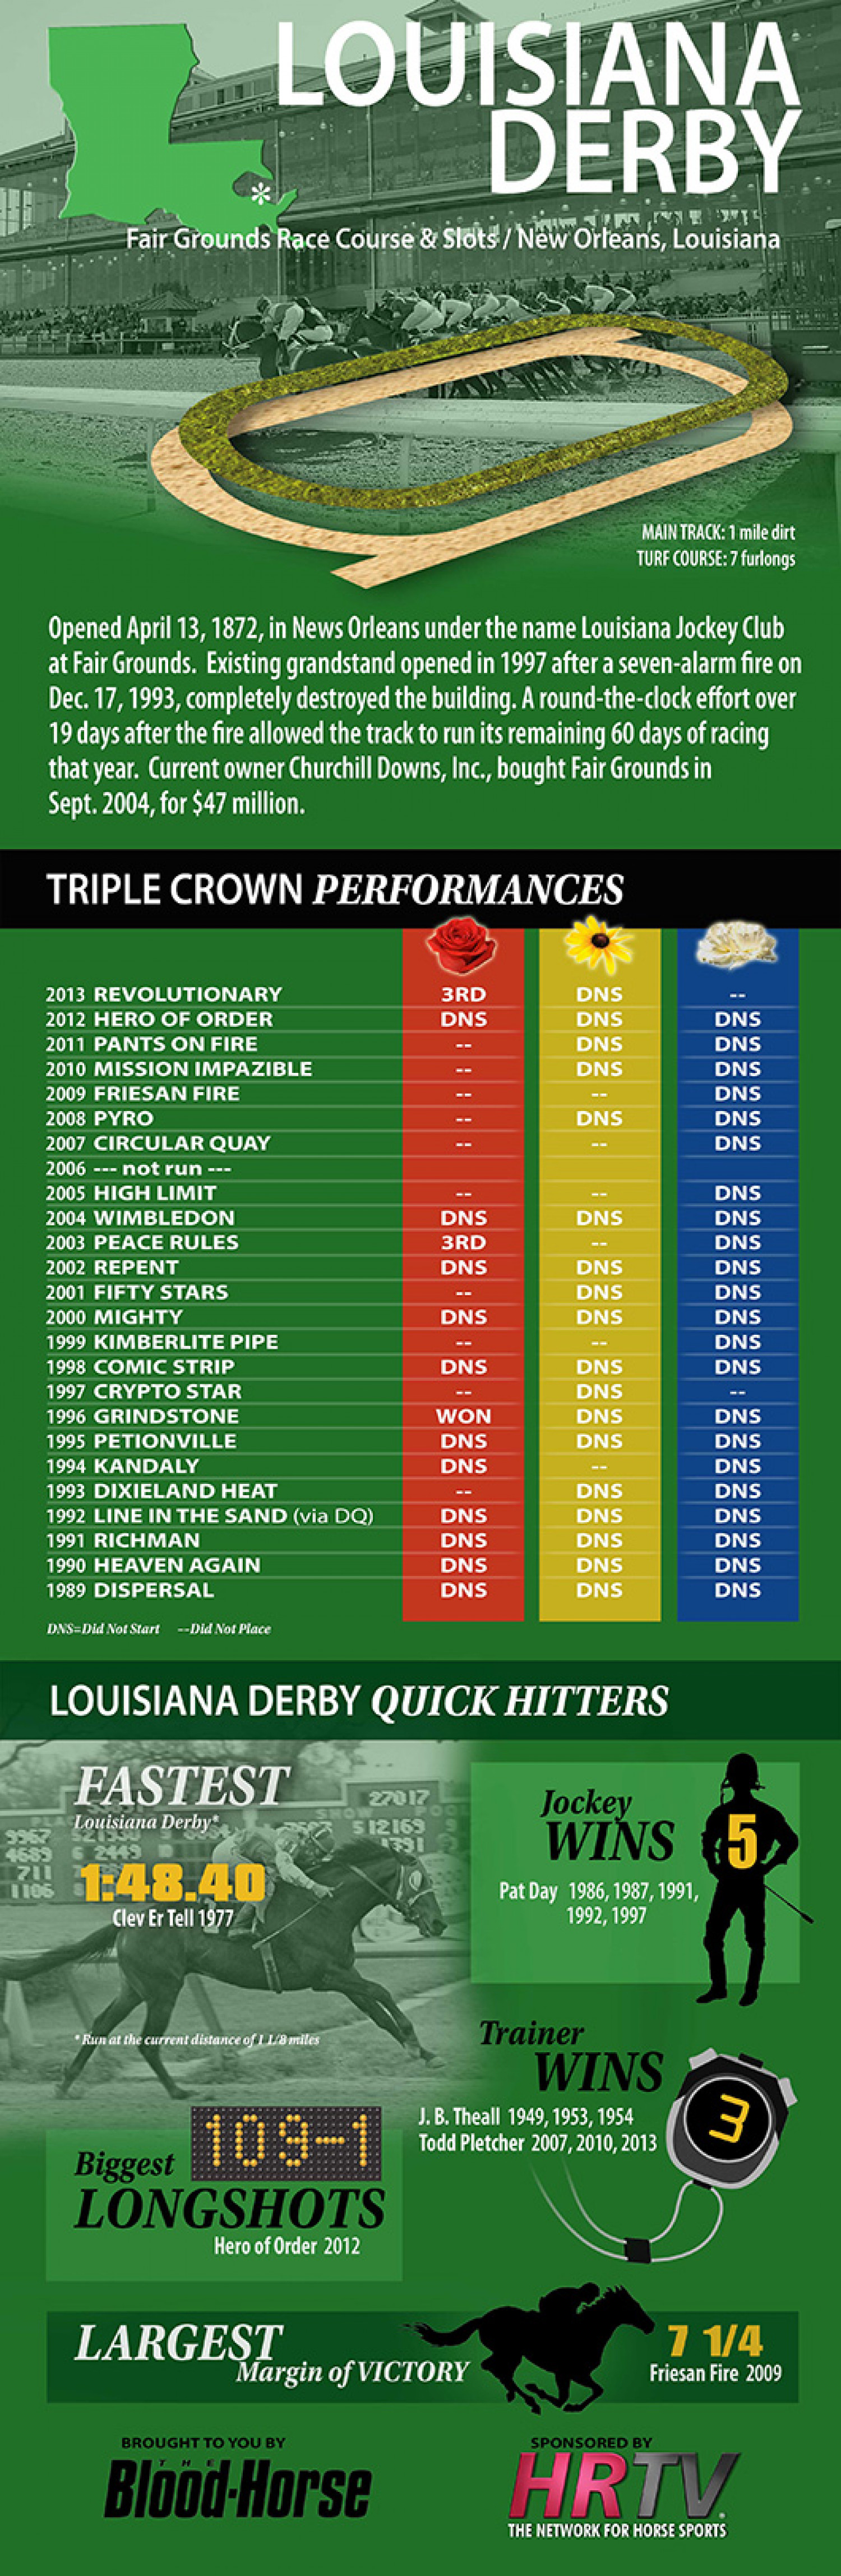 Louisiana Derby Infographic